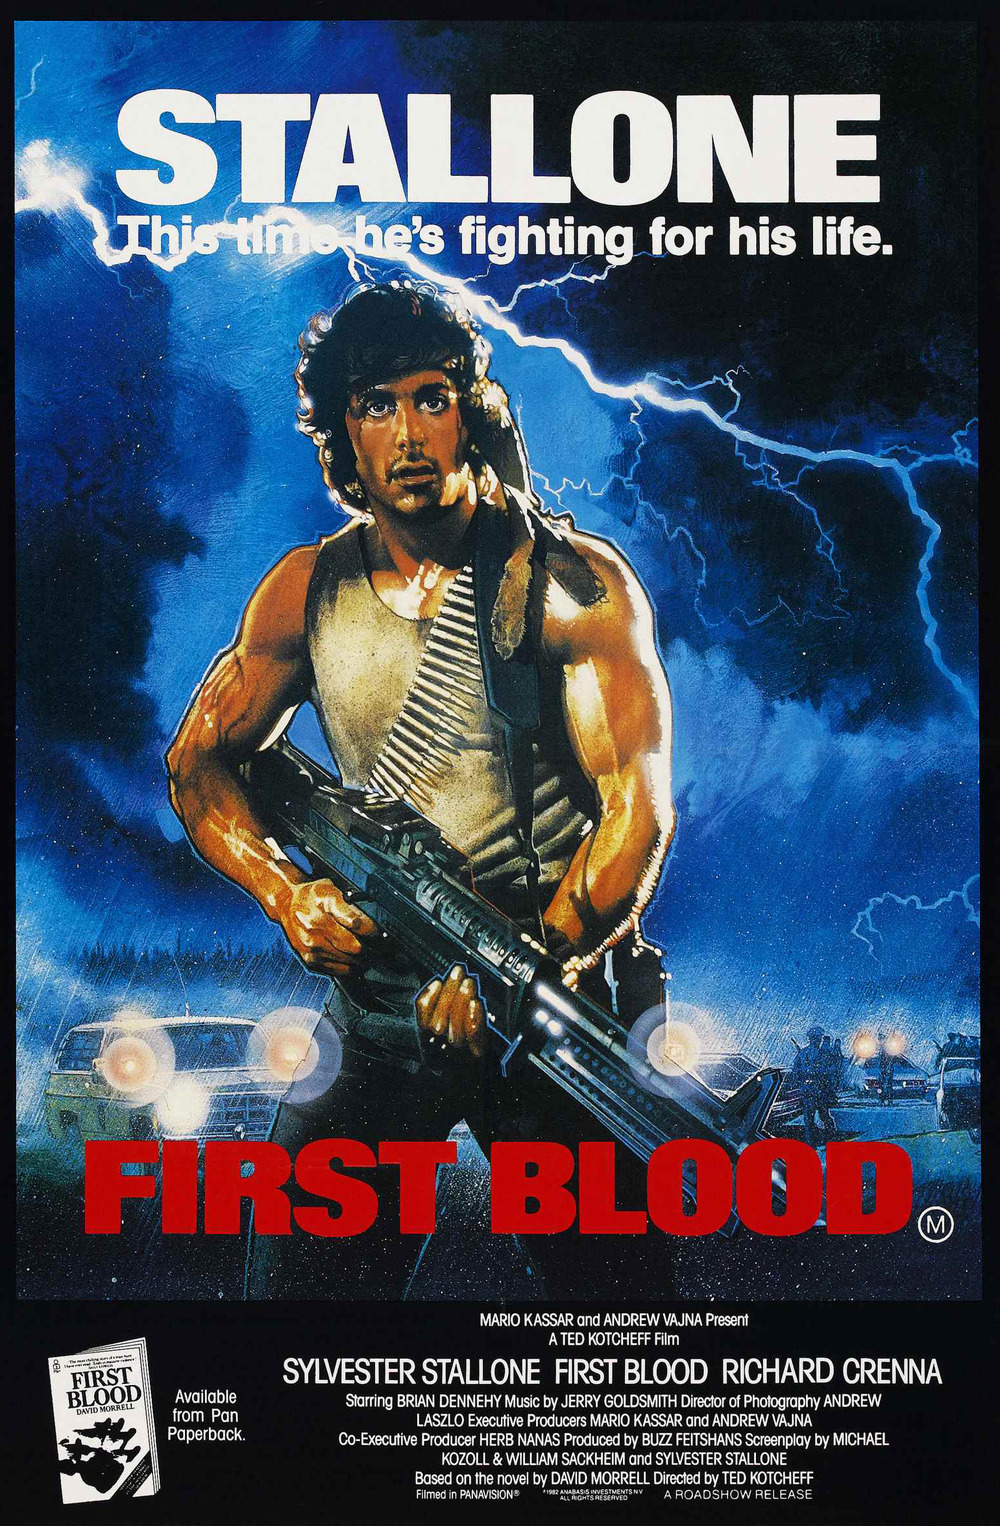 first-blood-1982-ted-kotcheff.jpg